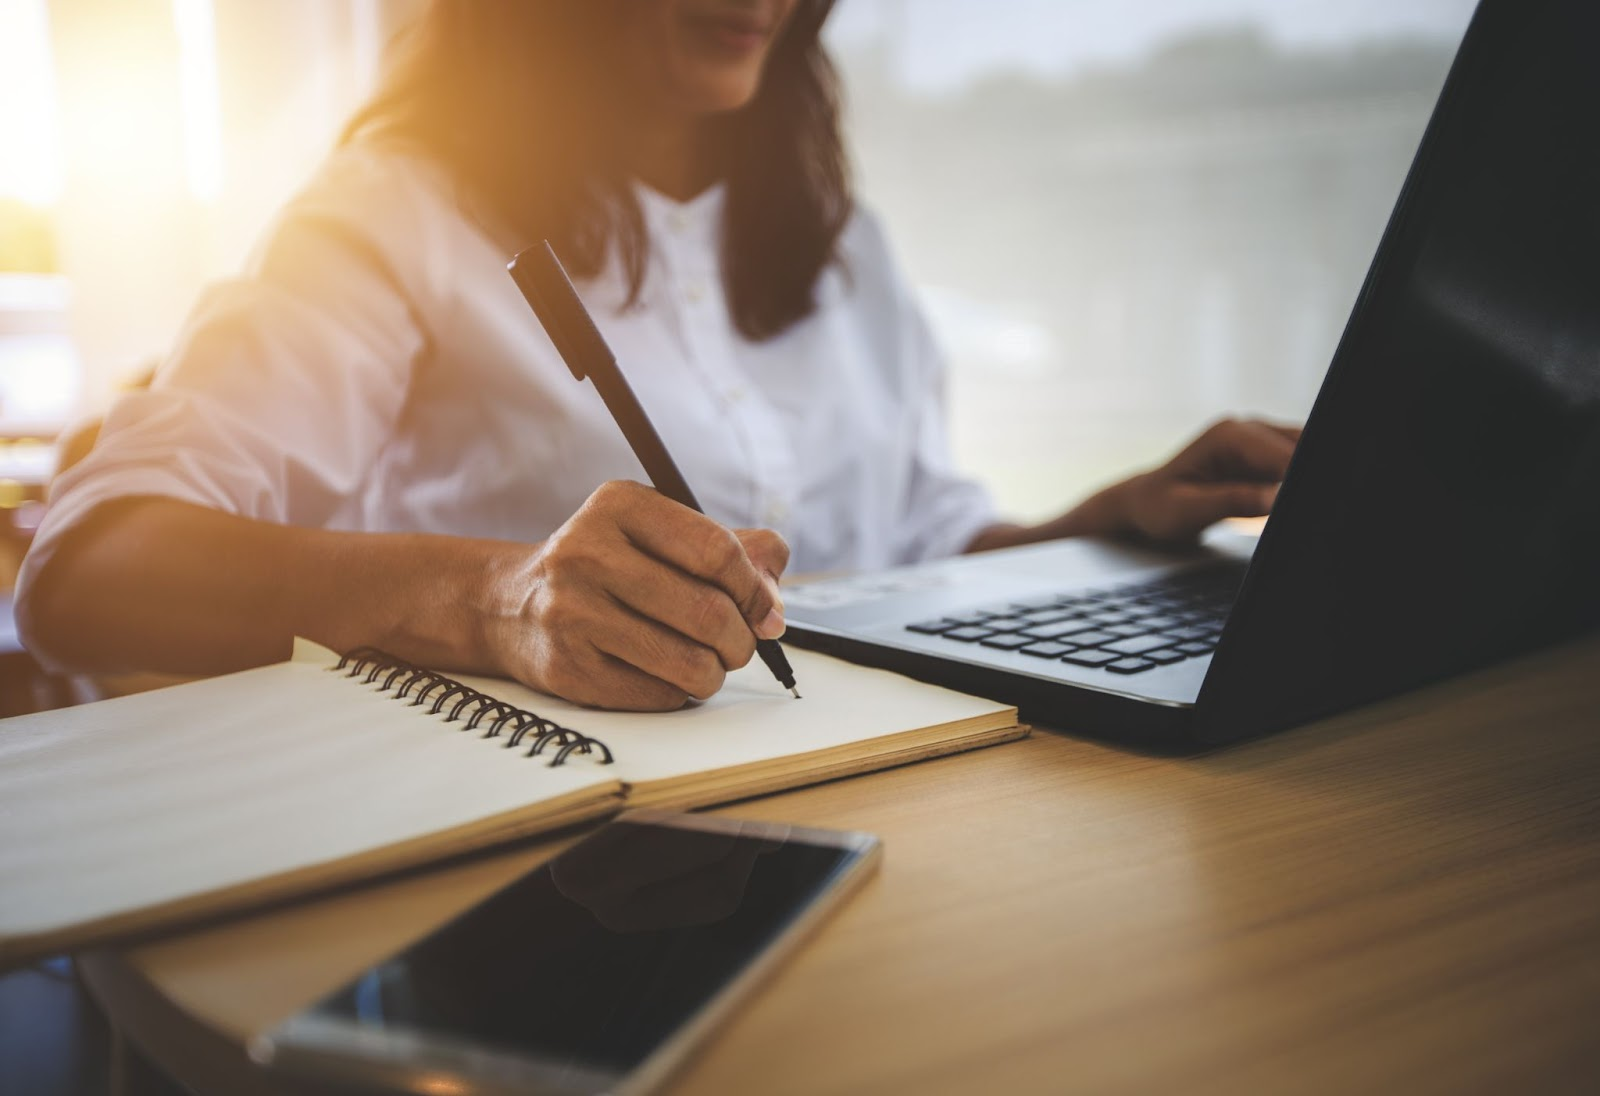 A woman uses a laptop and writes in a notebook